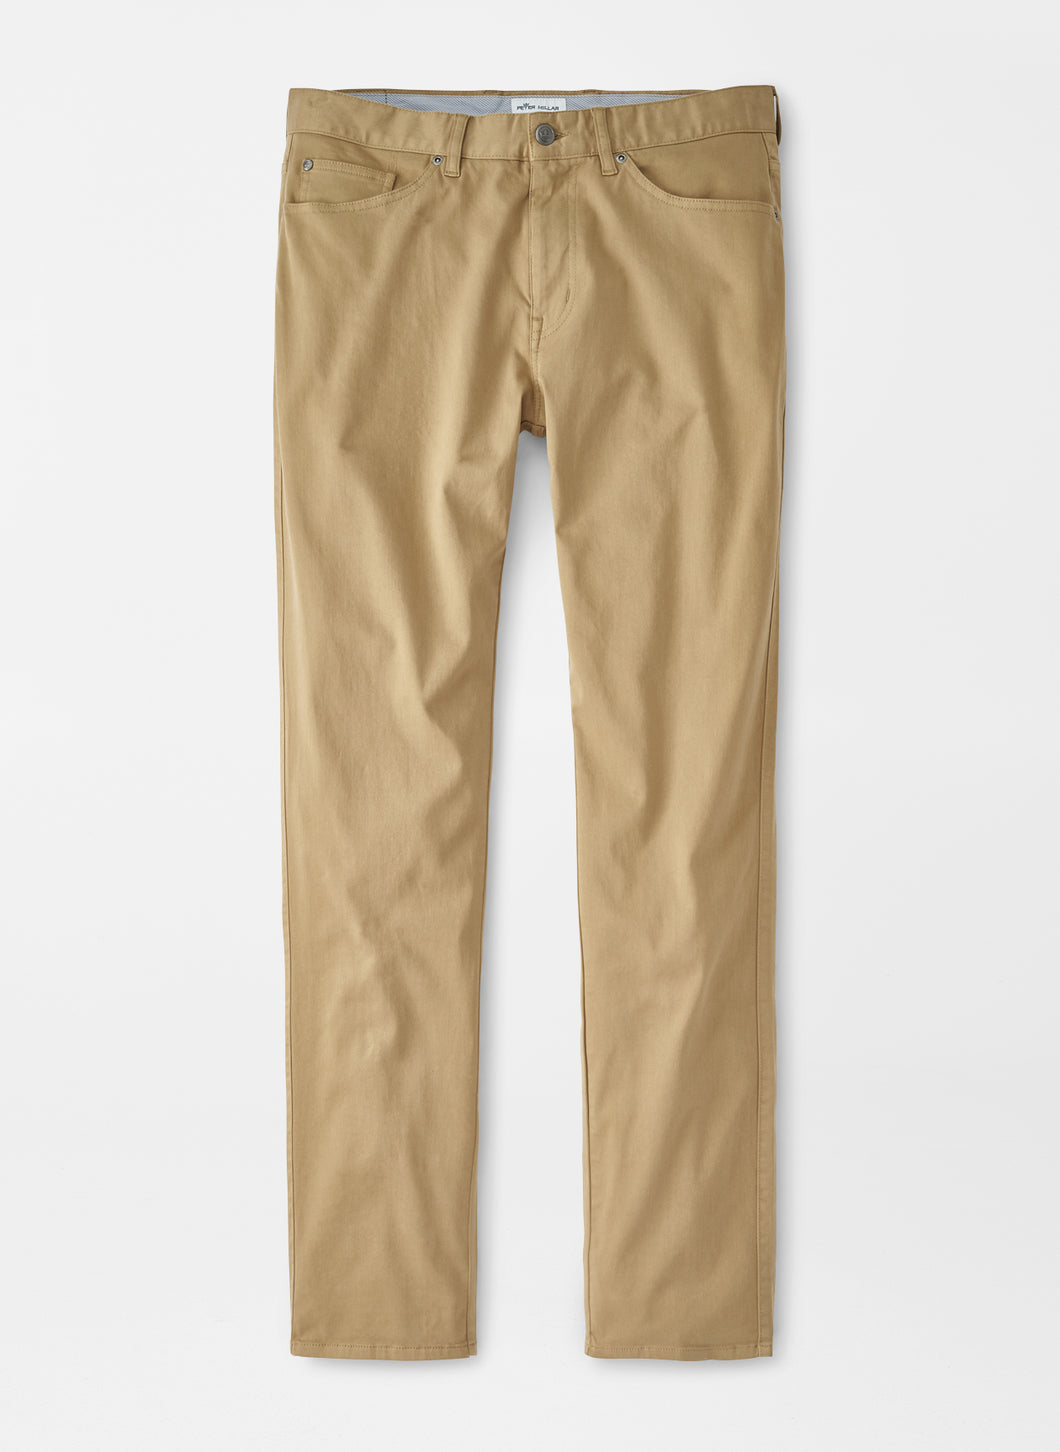 Peter Millar Ultimate Sateen Five-Pocket Pant: Khaki